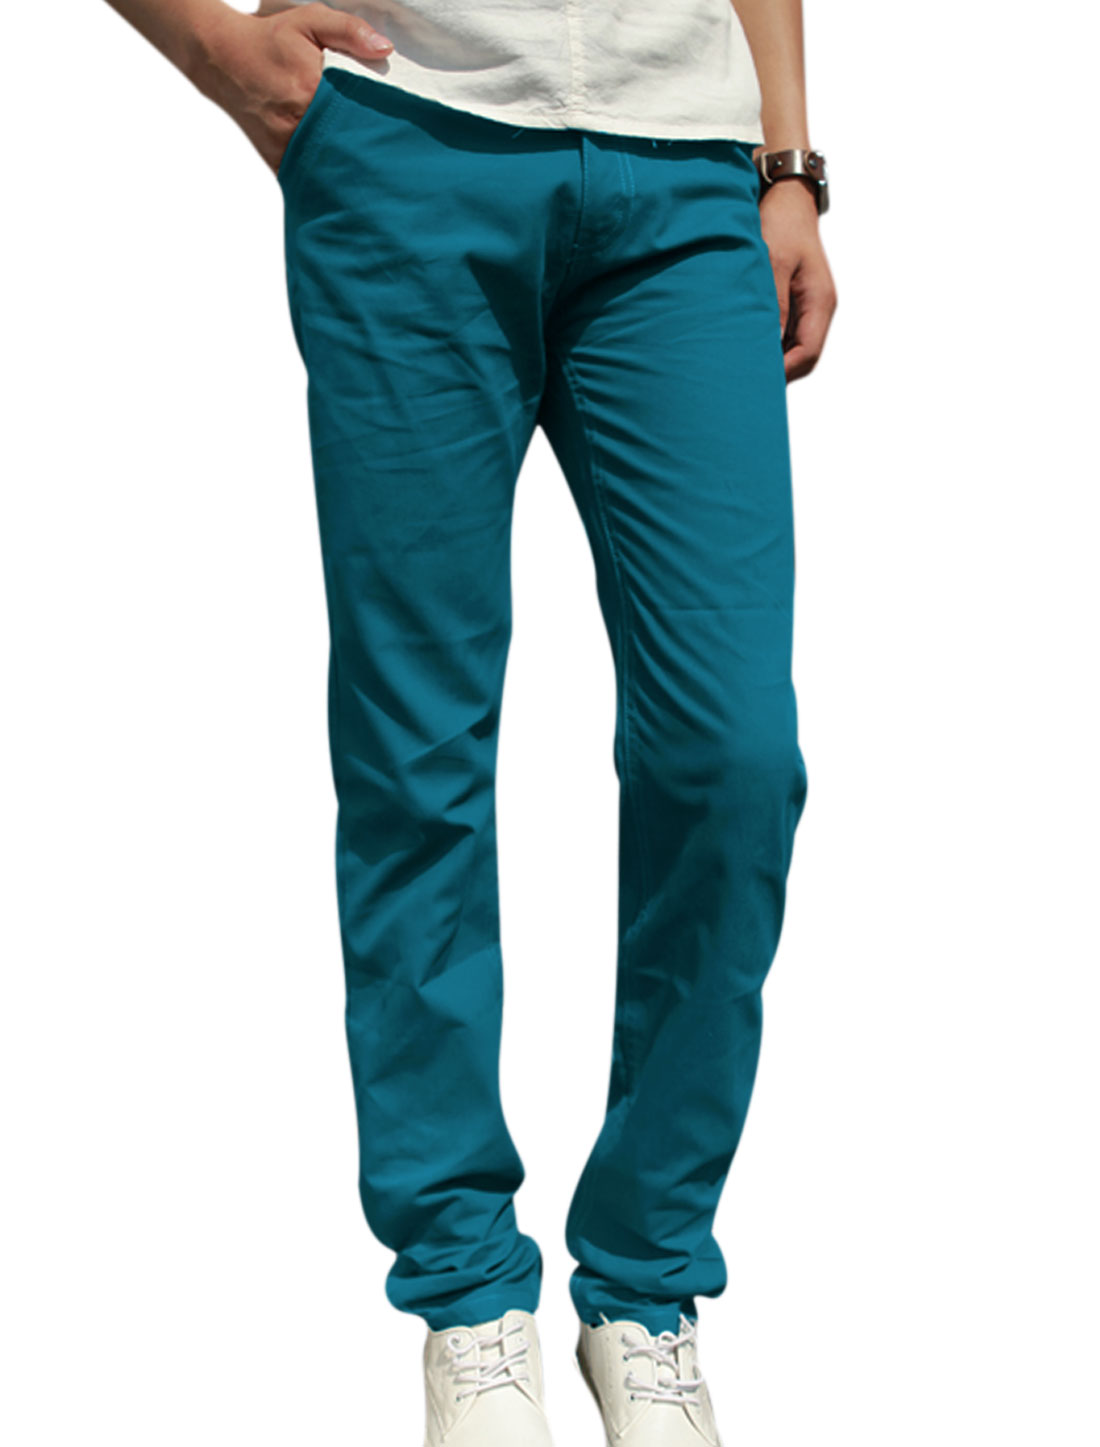 Men Button Closure Zip Fly Front Pockets Leisure Pants Turquoise W30